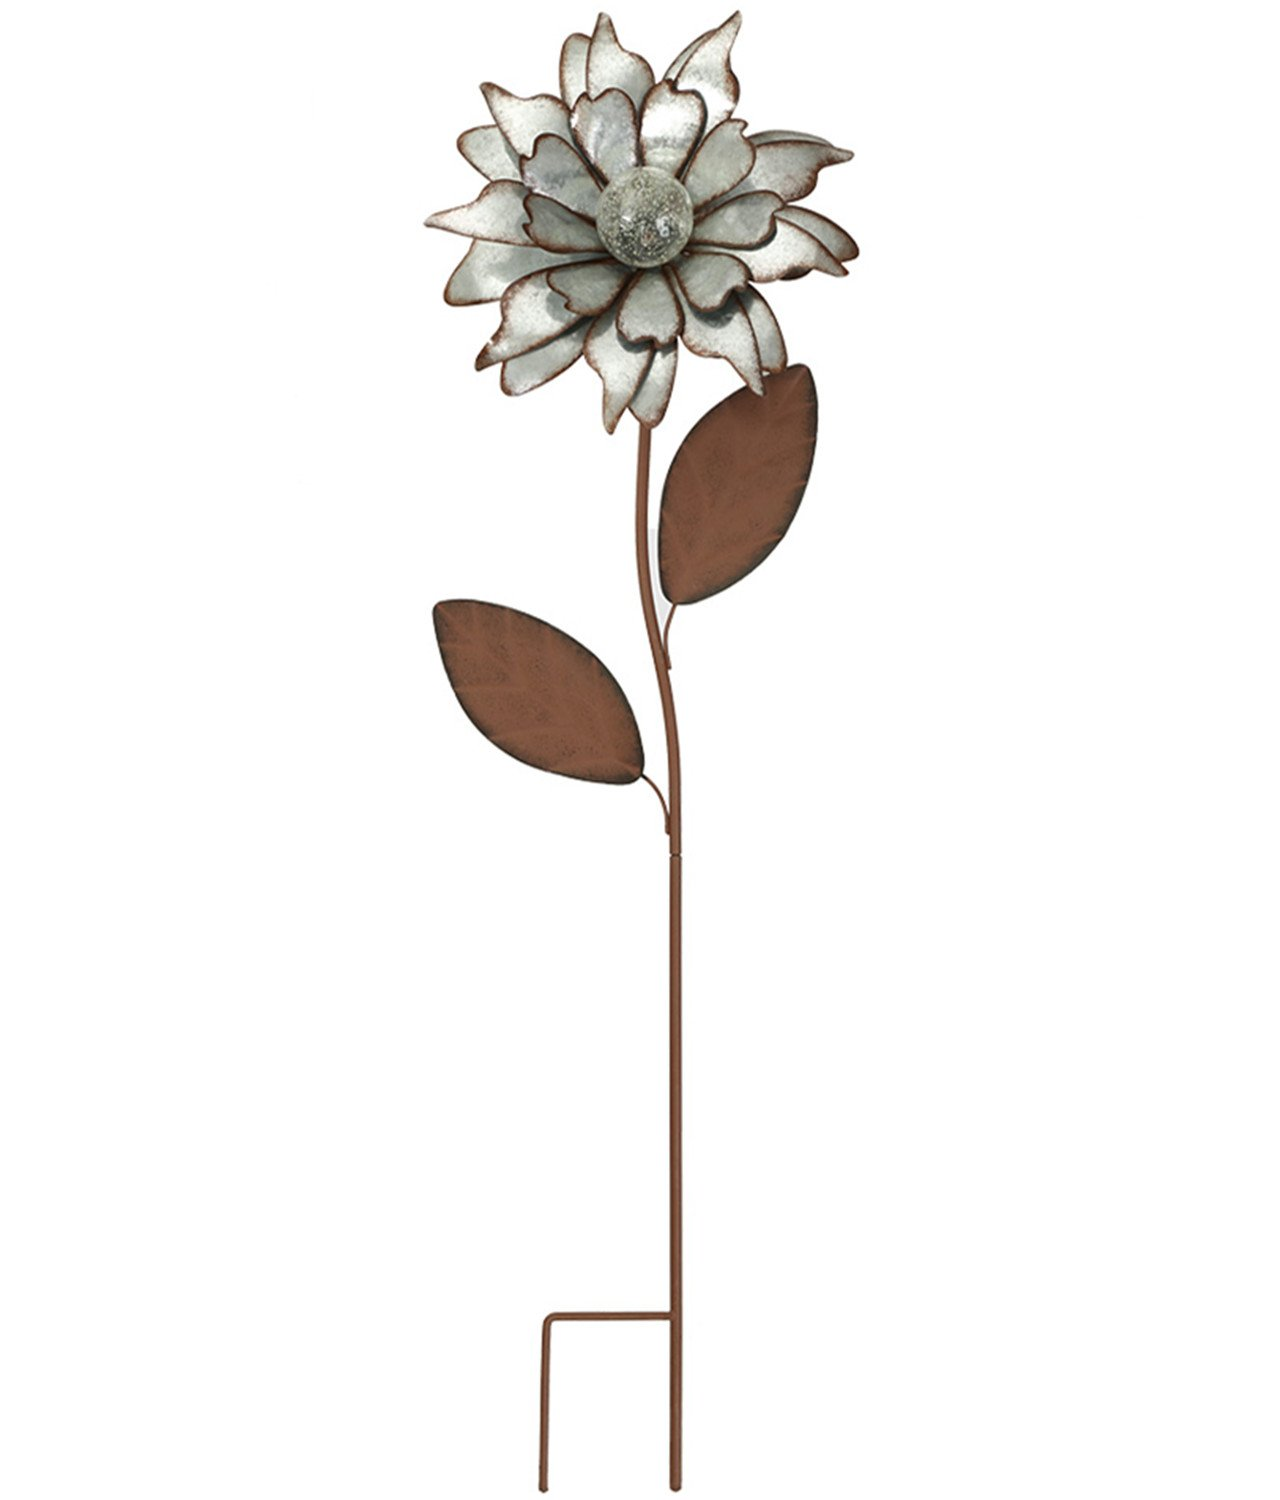 CEDAR HOME Galvanized Floral Garden Stake Outdoor Glow in Dark Water Proof Metal Stick Art Ornament Decor for Lawn Yard Patio, 12'' W x 3.5'' D x 35'' H, Rose